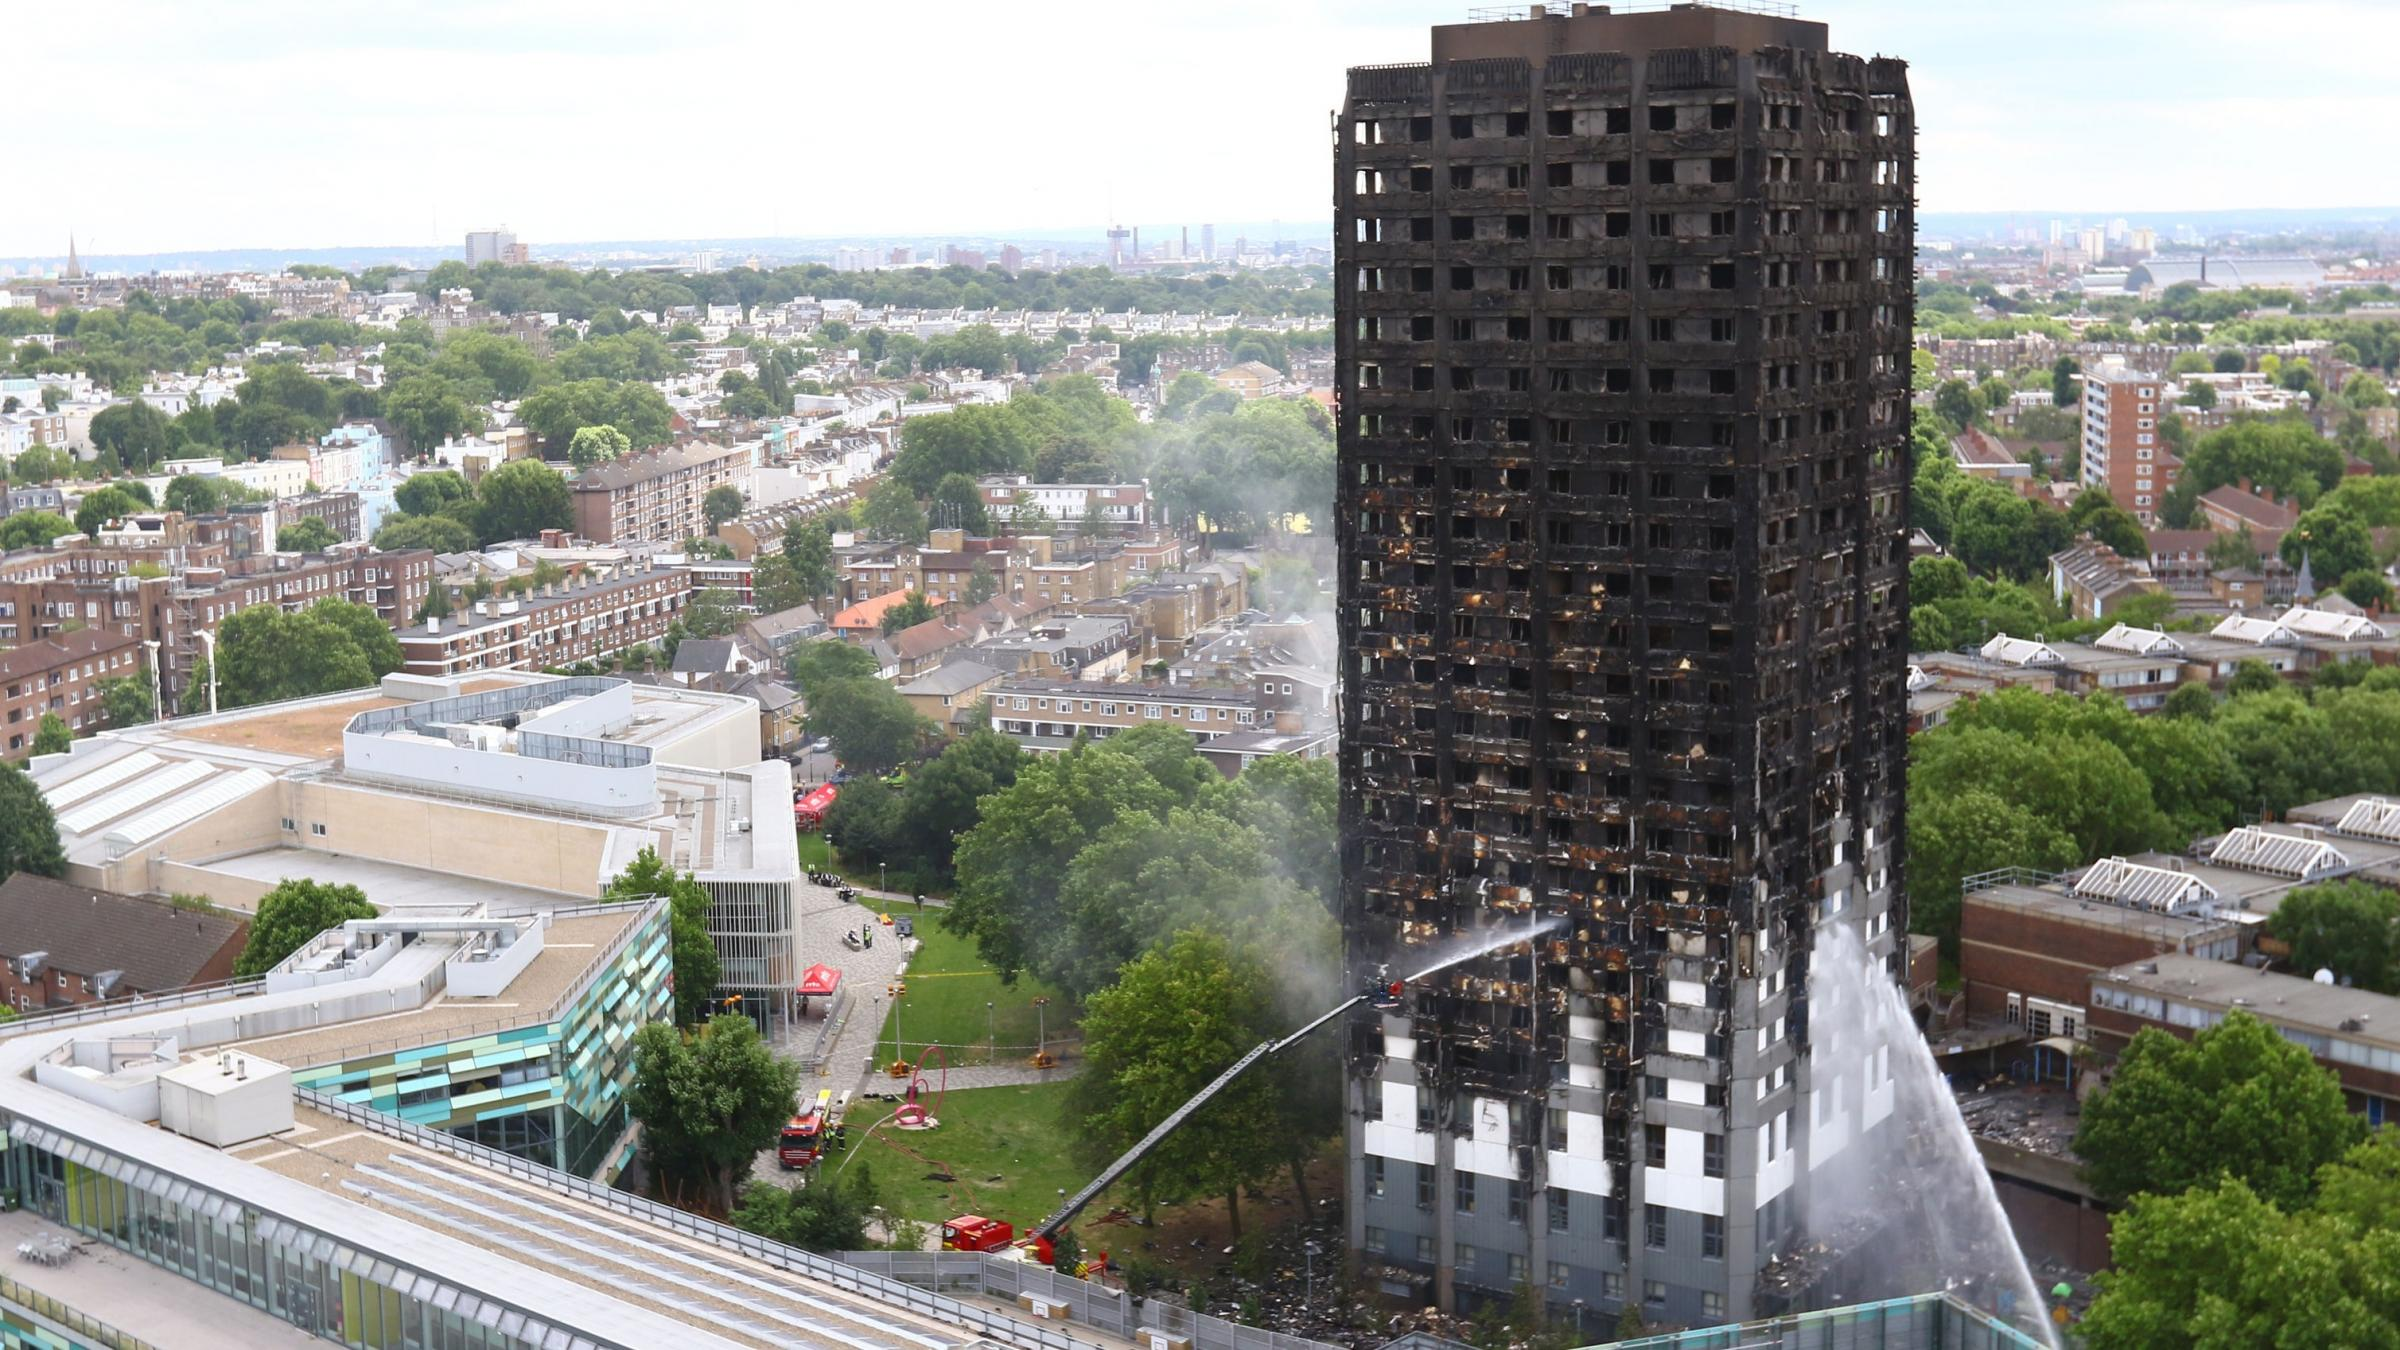 Thirty confirmed dead in Grenfell Tower blaze as fury grows among survivors